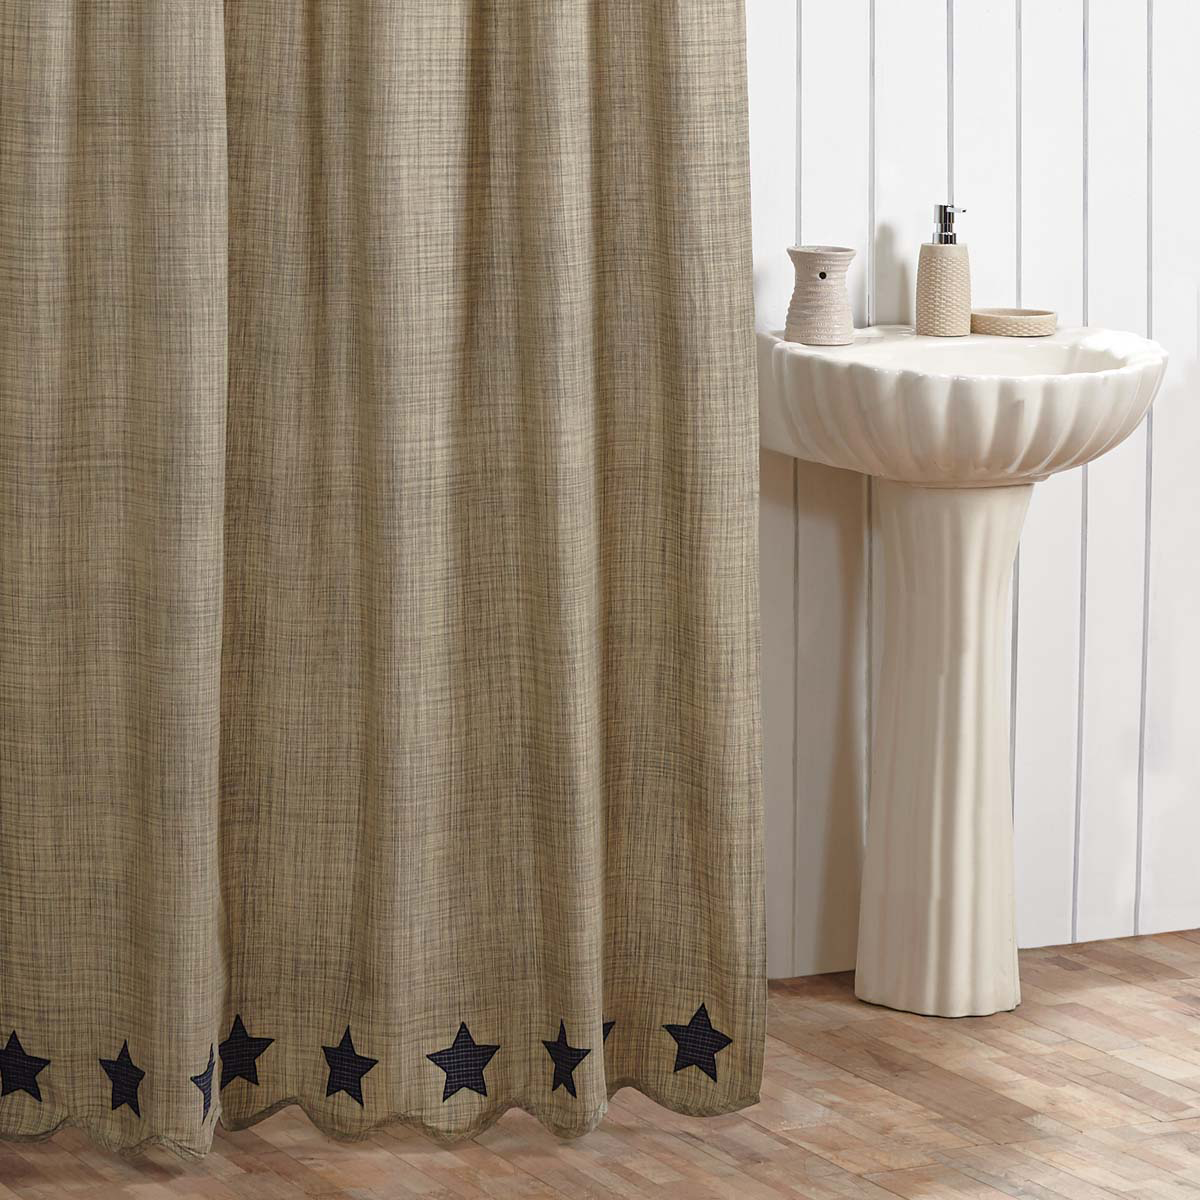 This Country Blue Star And Khaki Shower Curtain Brings A Primitive